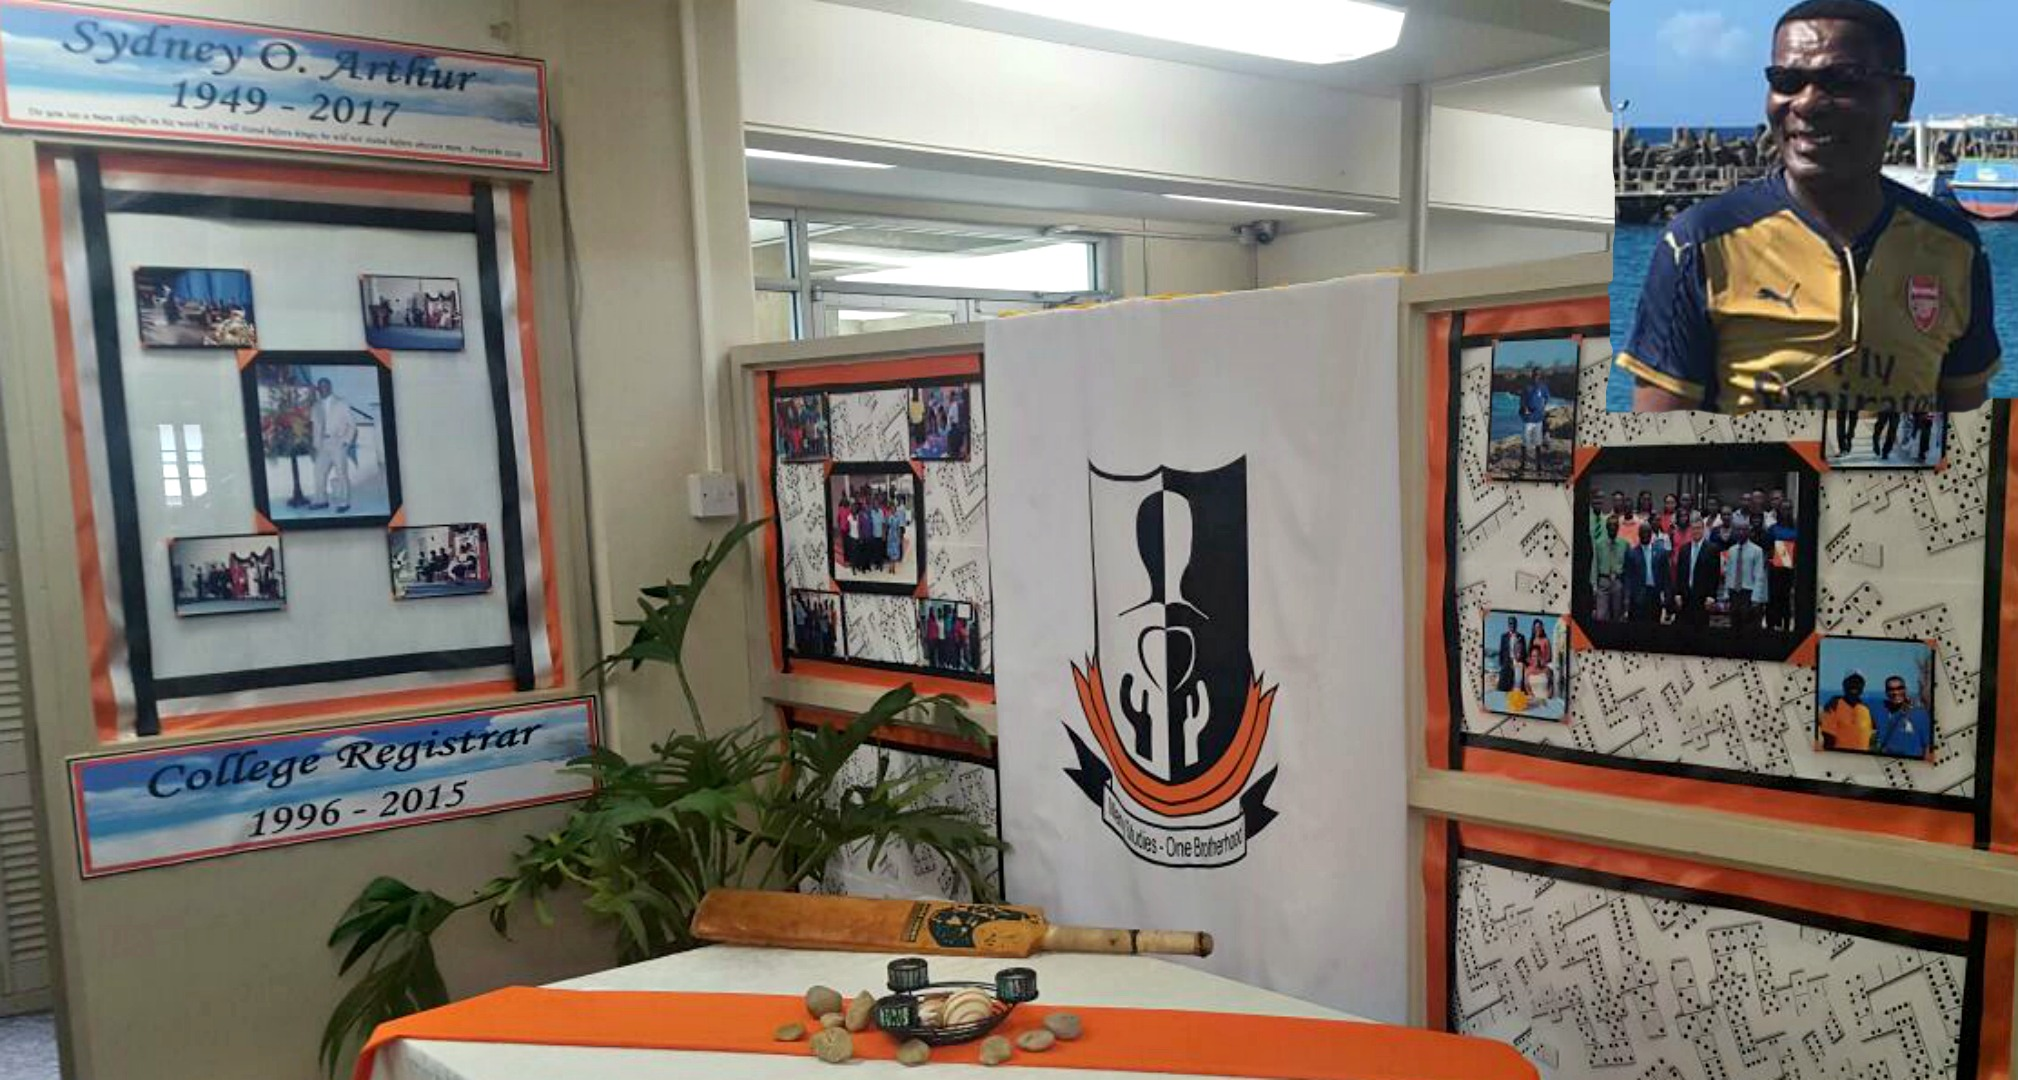 Tribute at the Barbados Community College (BCC). Inset - Sydney O. Arthur.